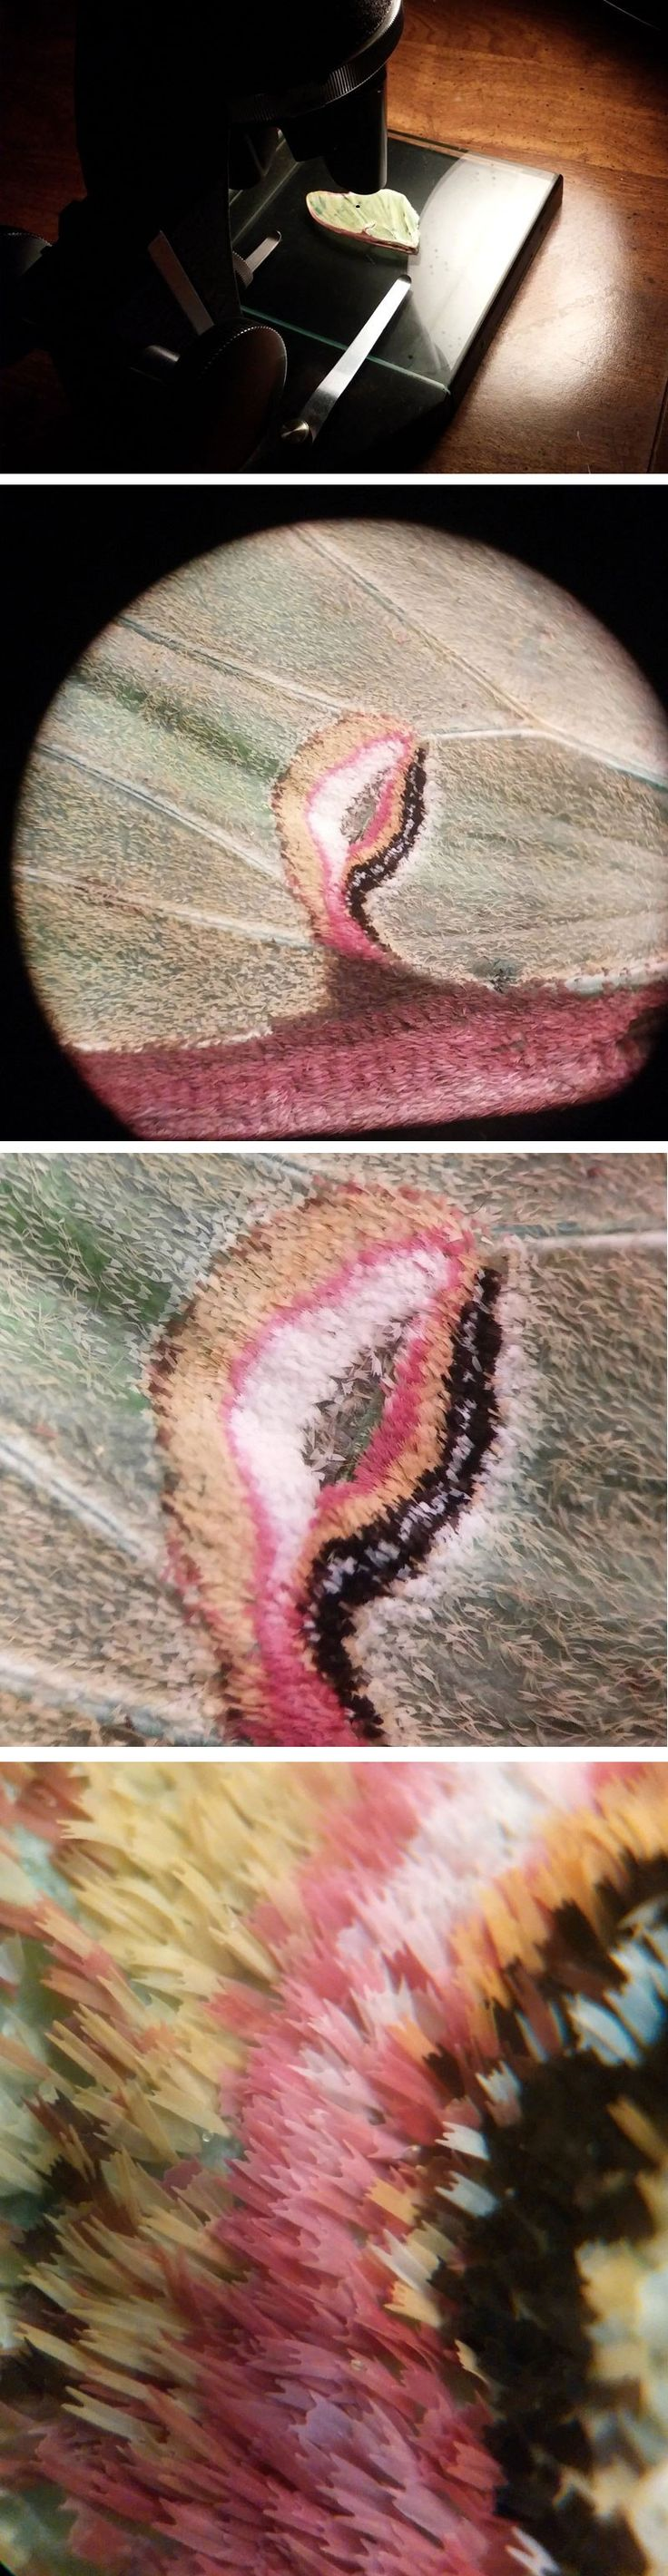 Surpreendentes Fotos de Asa de uma traça de Luna sob um microscópio. Reddit user Proteon found a luna moth's wing earlier this week and captured some amazing close-ups using a 1951 American Optical Spencer microscope. As the magnification gradually increases you can see the incredible texture and complexity of the moth's wing. The luna moth (Actias luna) is a lime-green, Nearctic Saturniid moth in the family Saturniidae, subfamily Saturniinae. It has a wingspan of up to 114 mm.